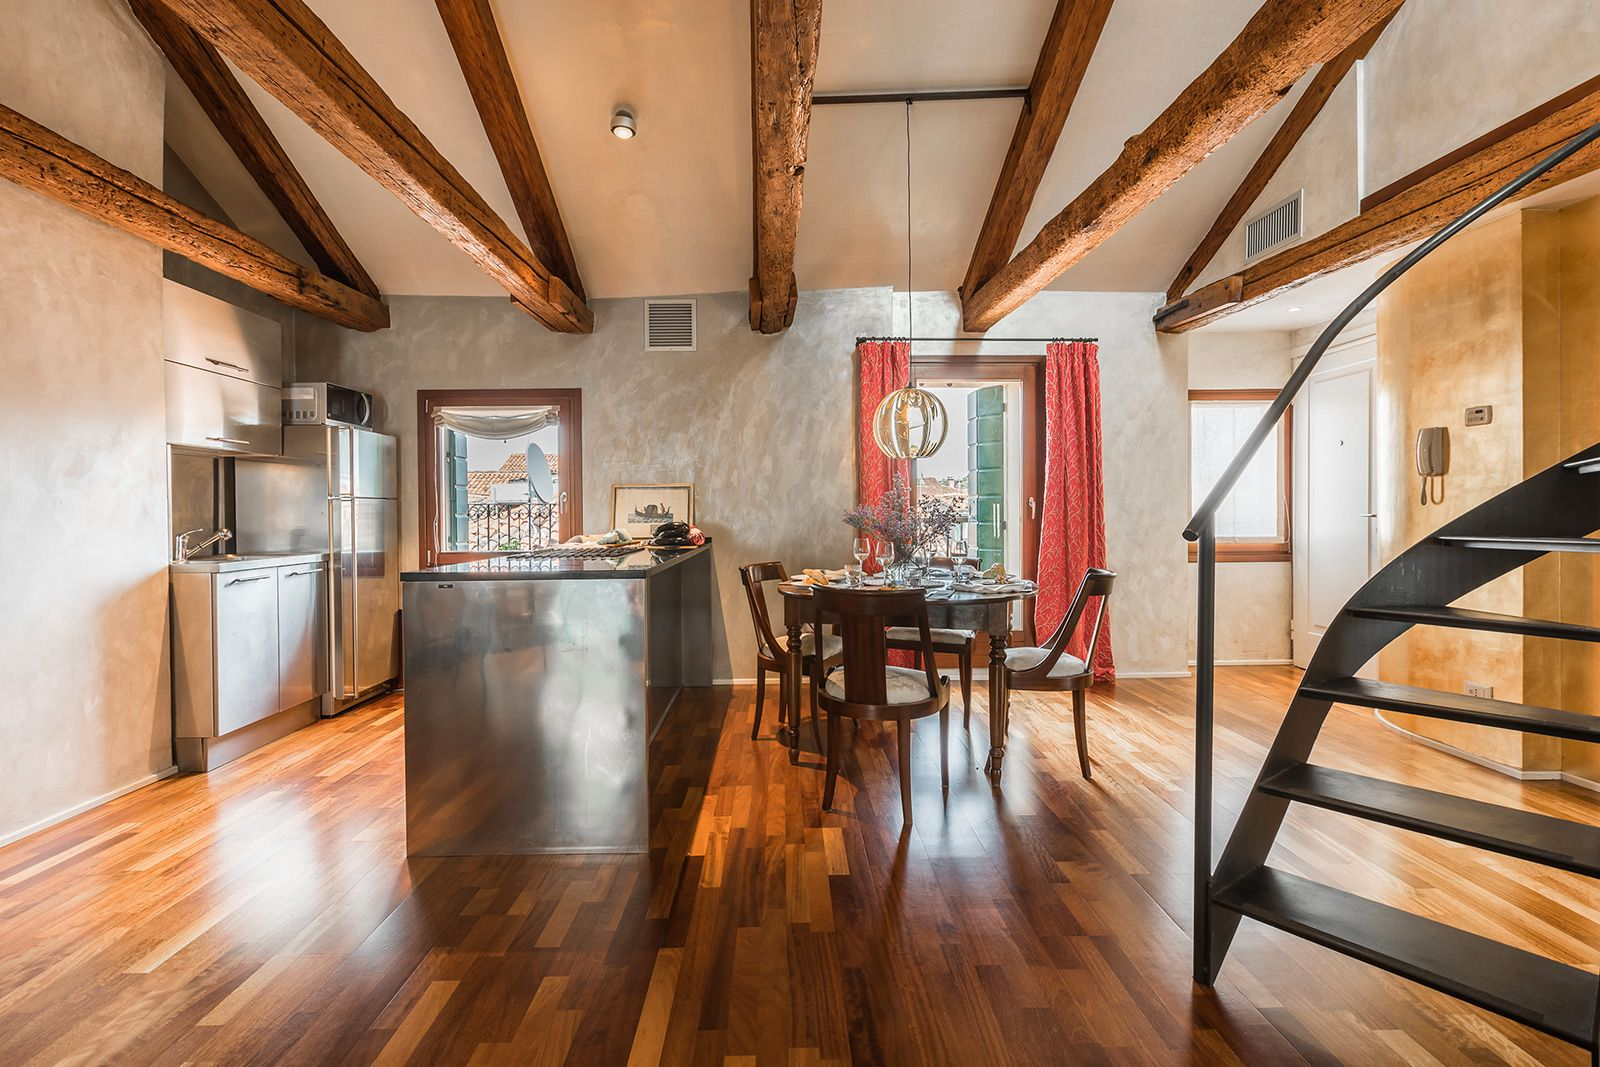 the antique wooden beams and the parquet flooring confer warmth to the ambience